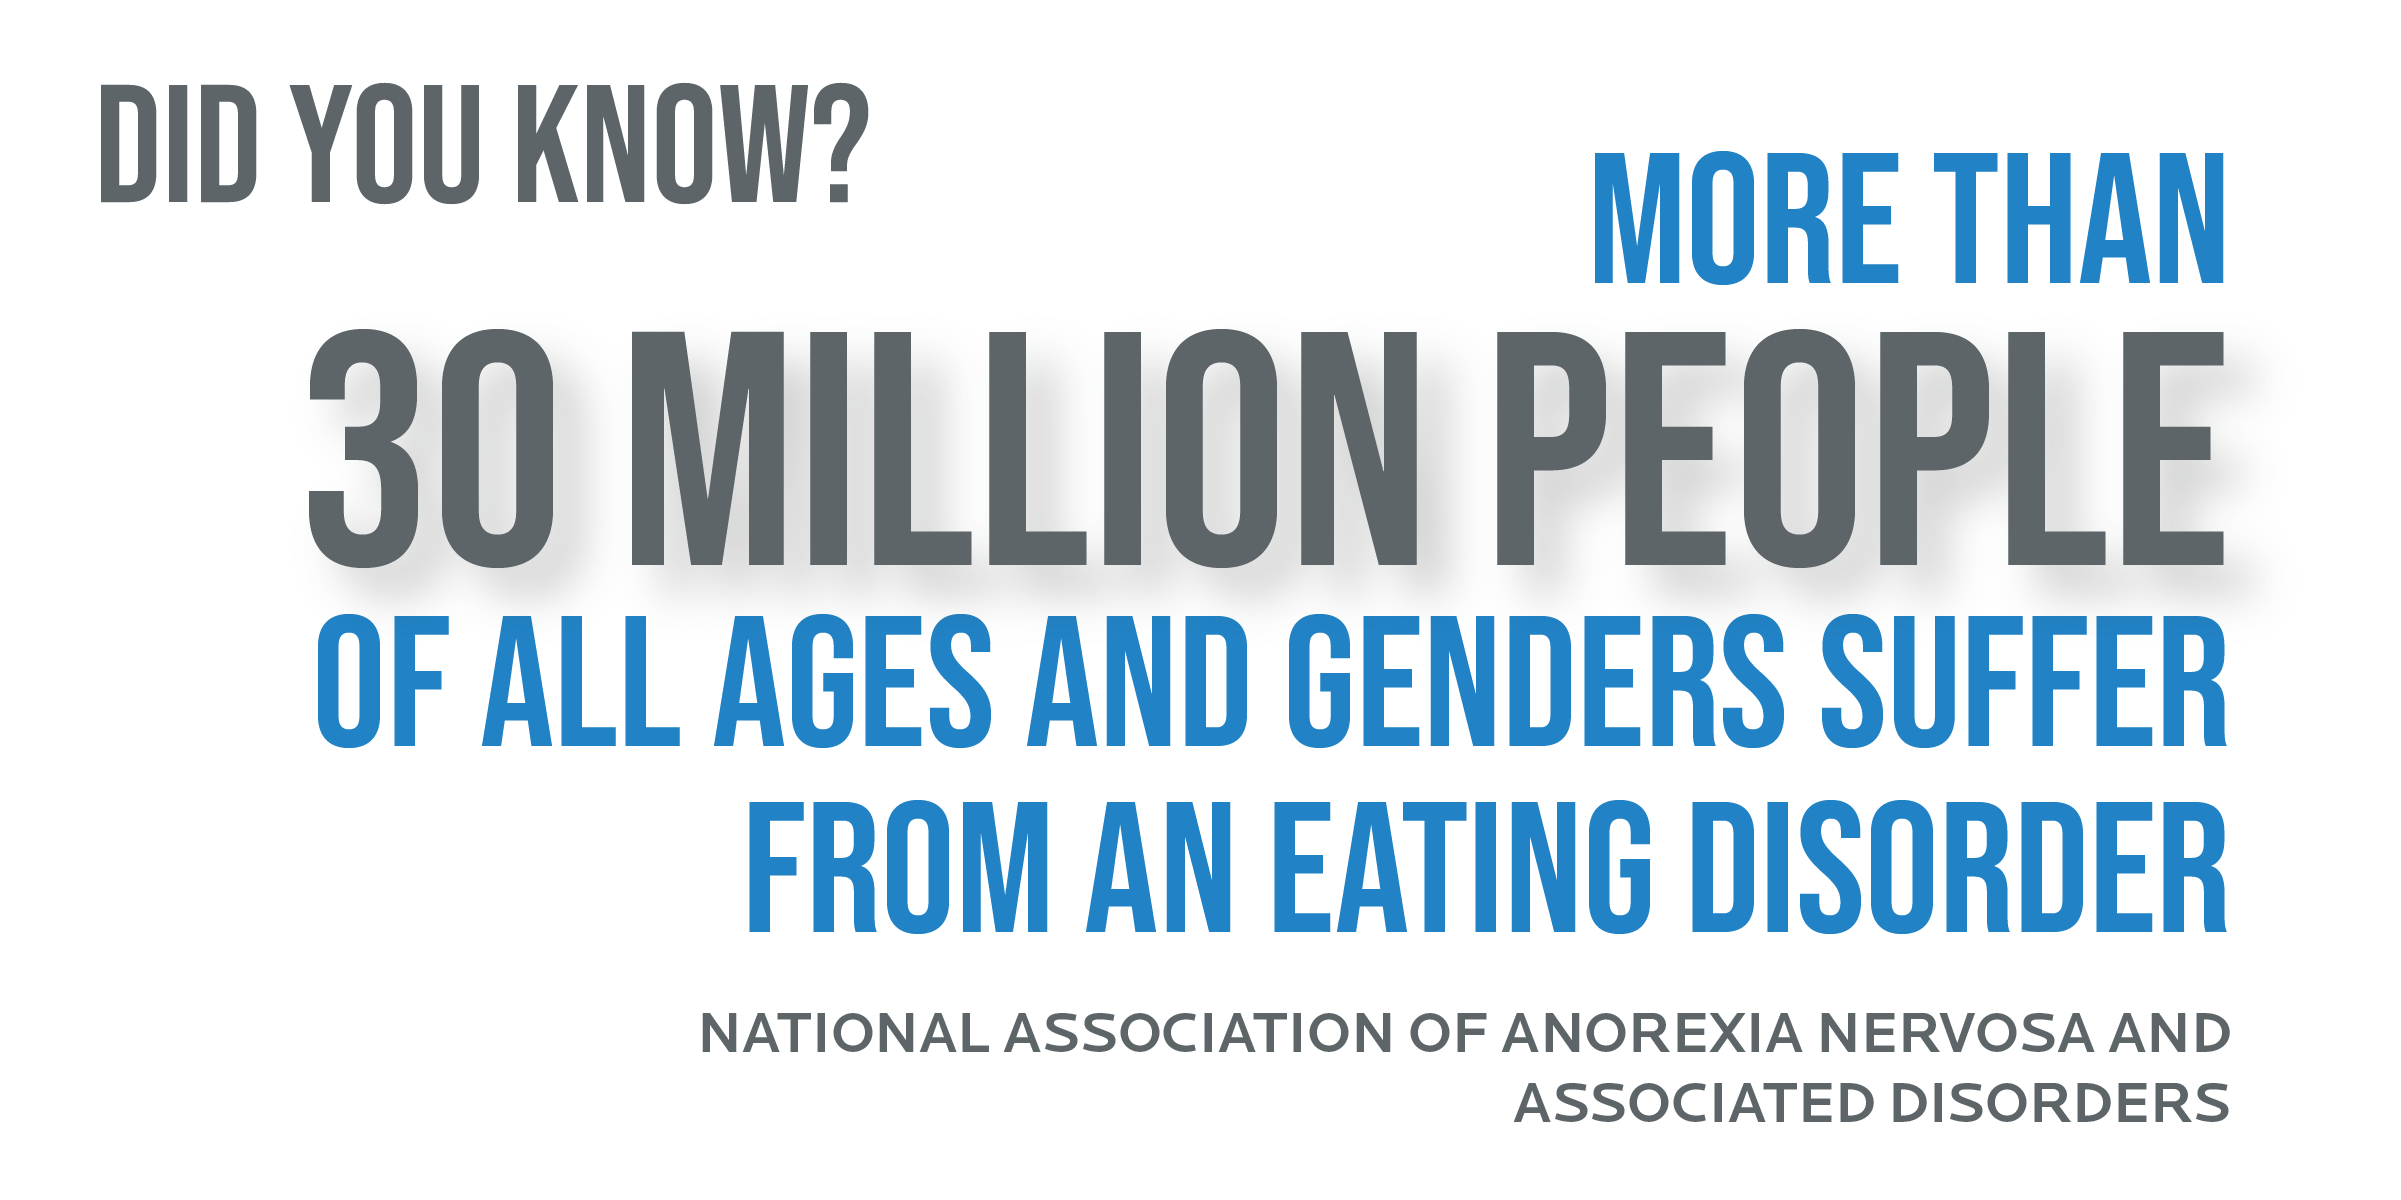 More than 30 million people of all ages and genders suffer from an eating disorder